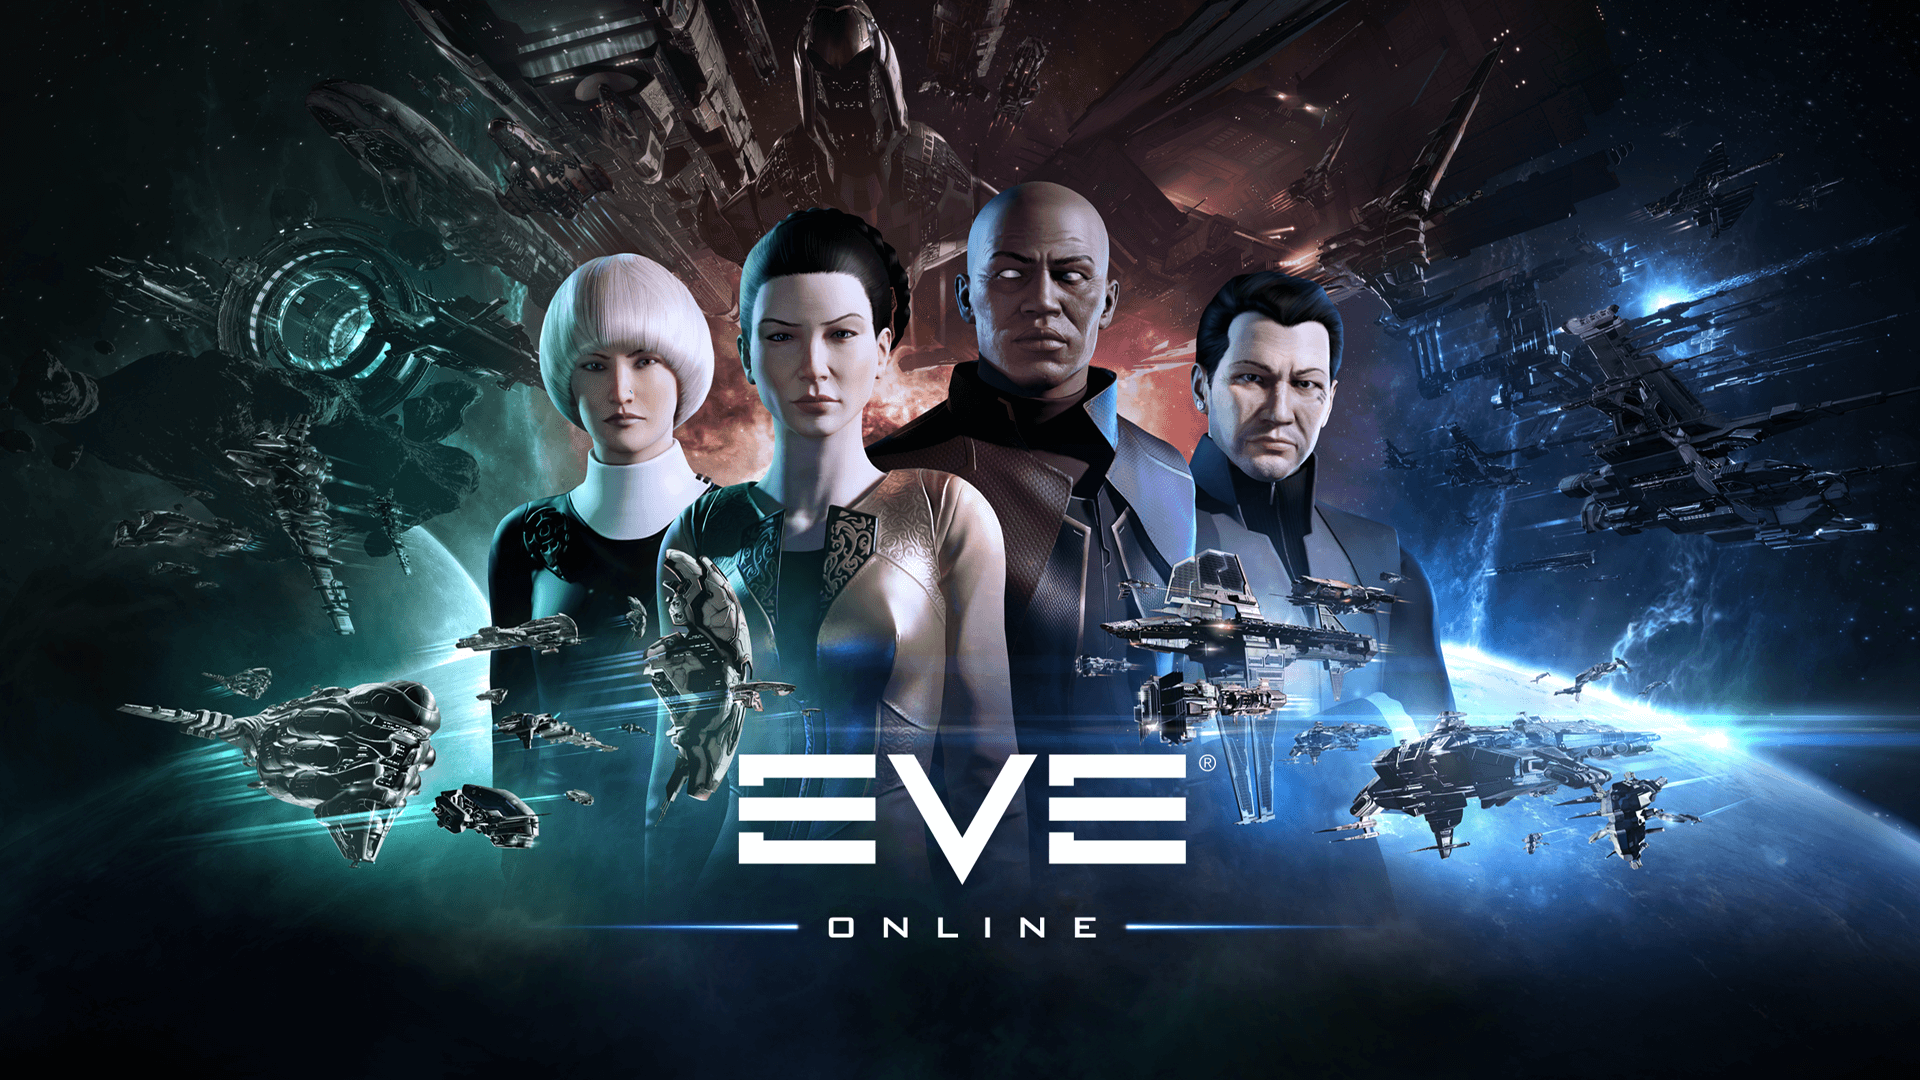 EVE Online game image